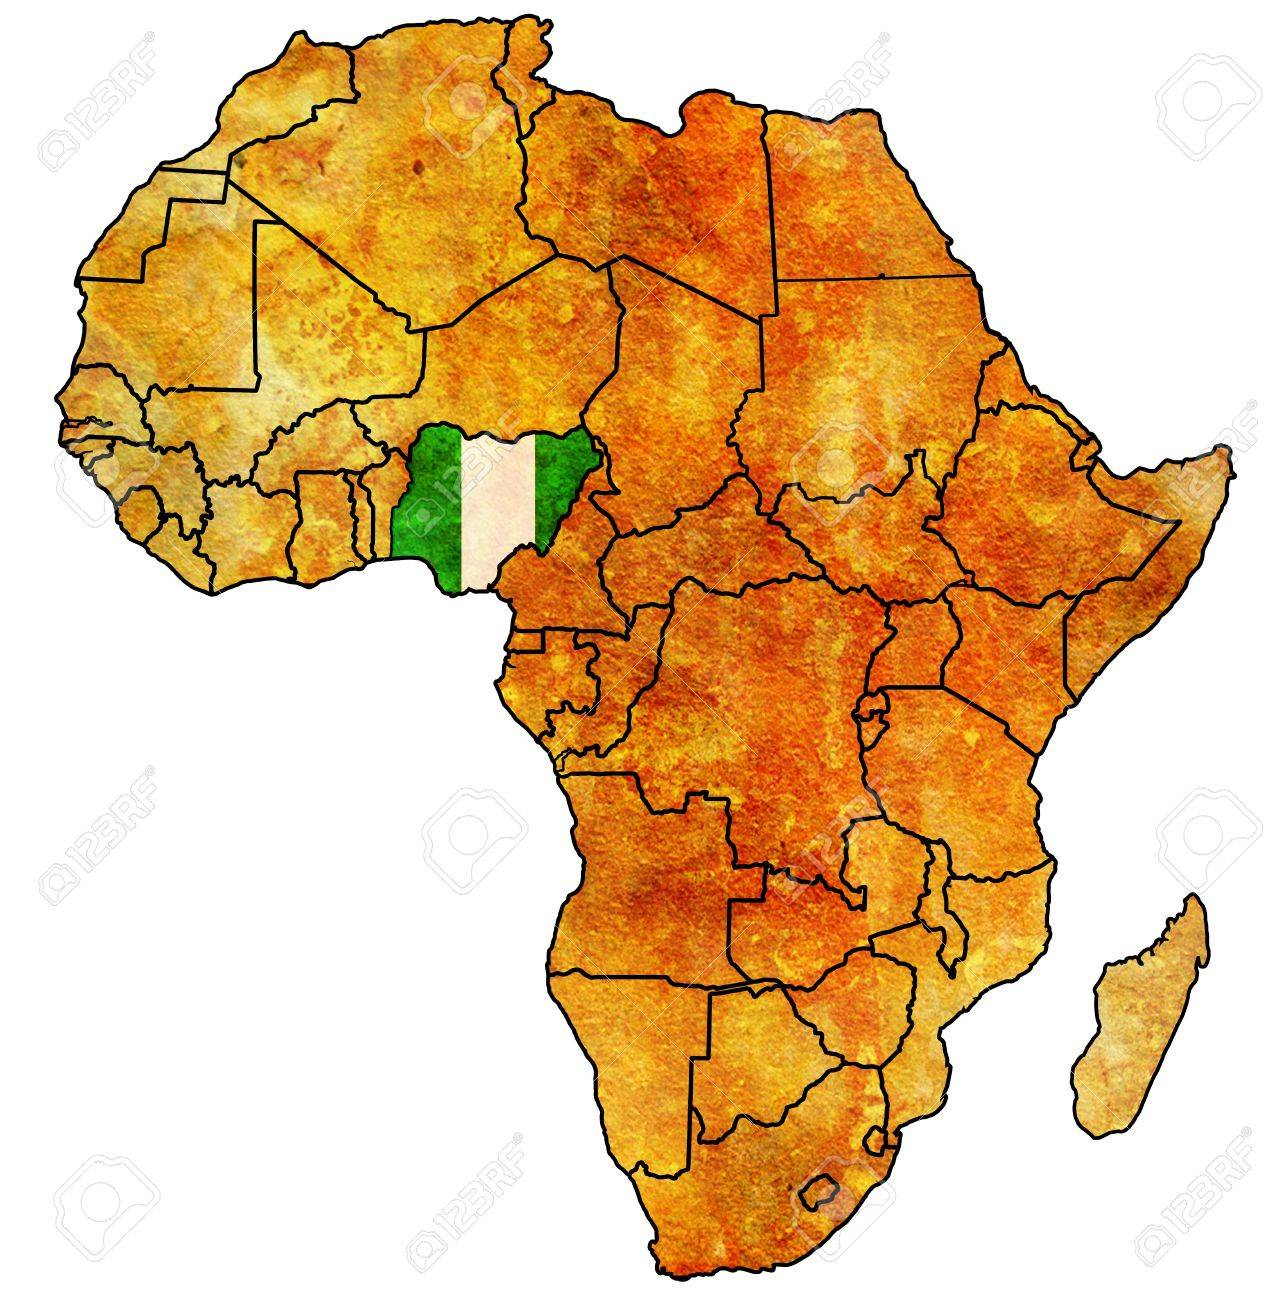 nigeria on actual vintage political map of africa with flags